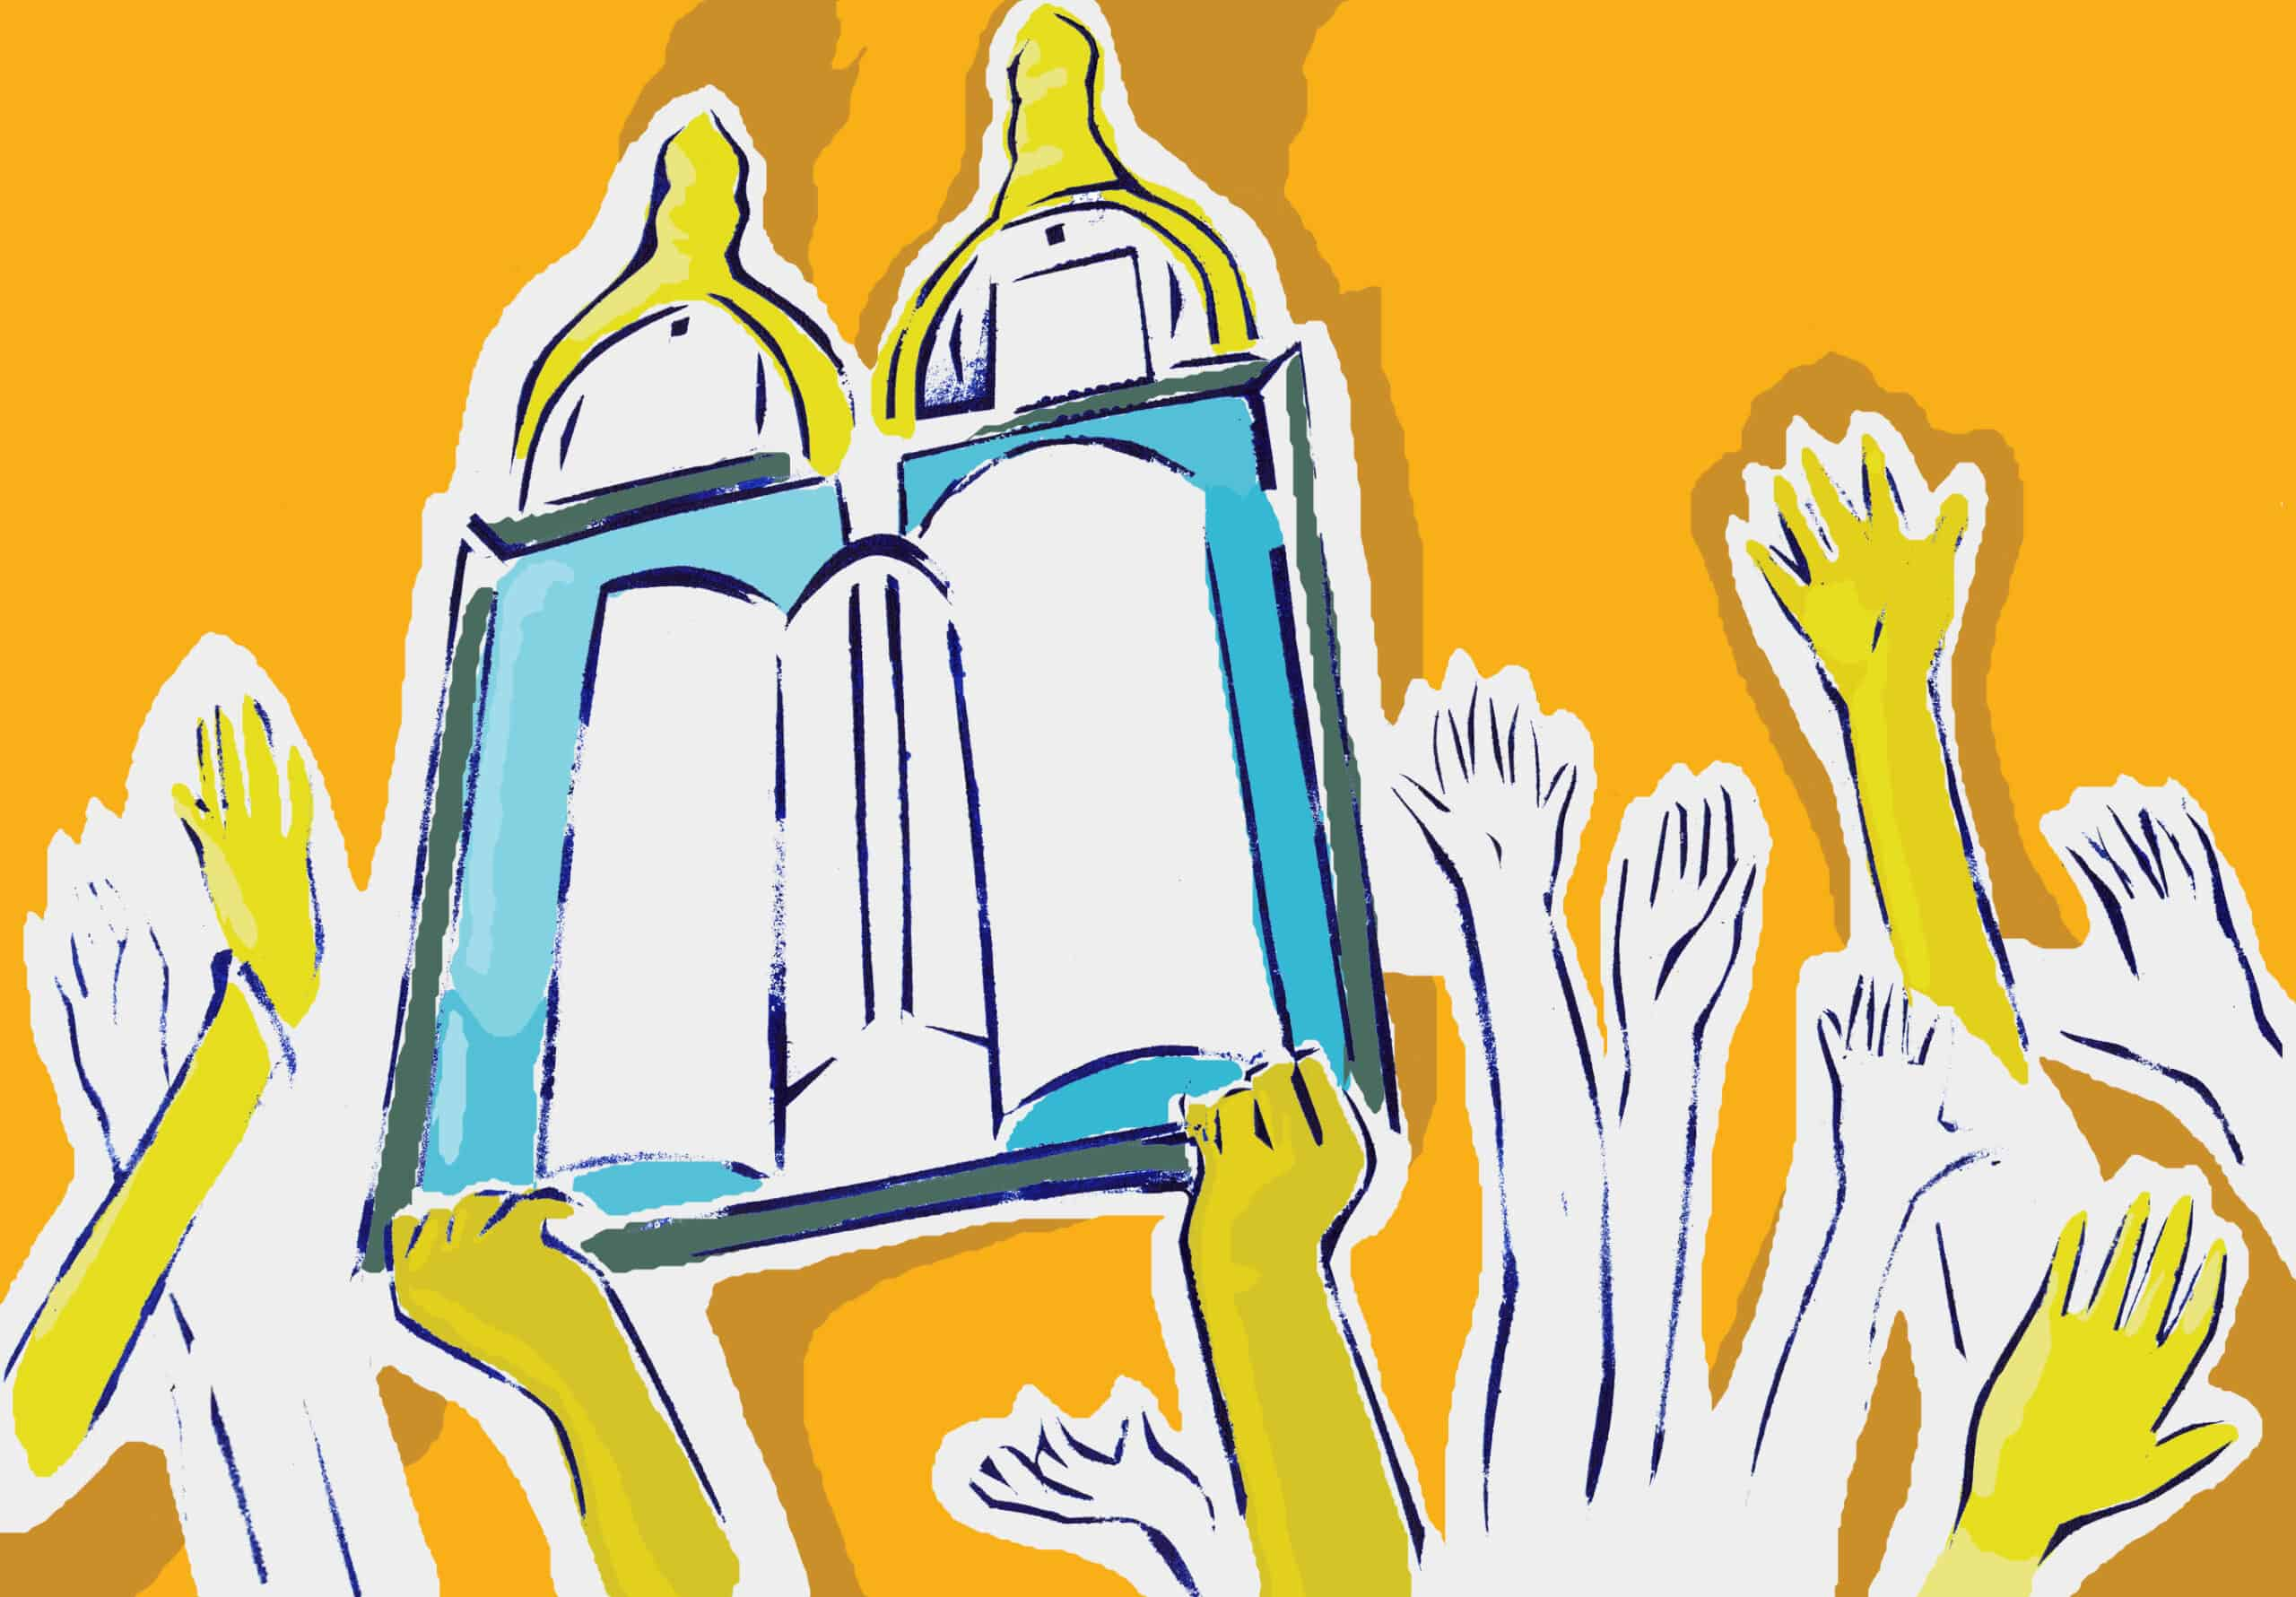 A cute graphic of the Torah with hands reaching up towards it.